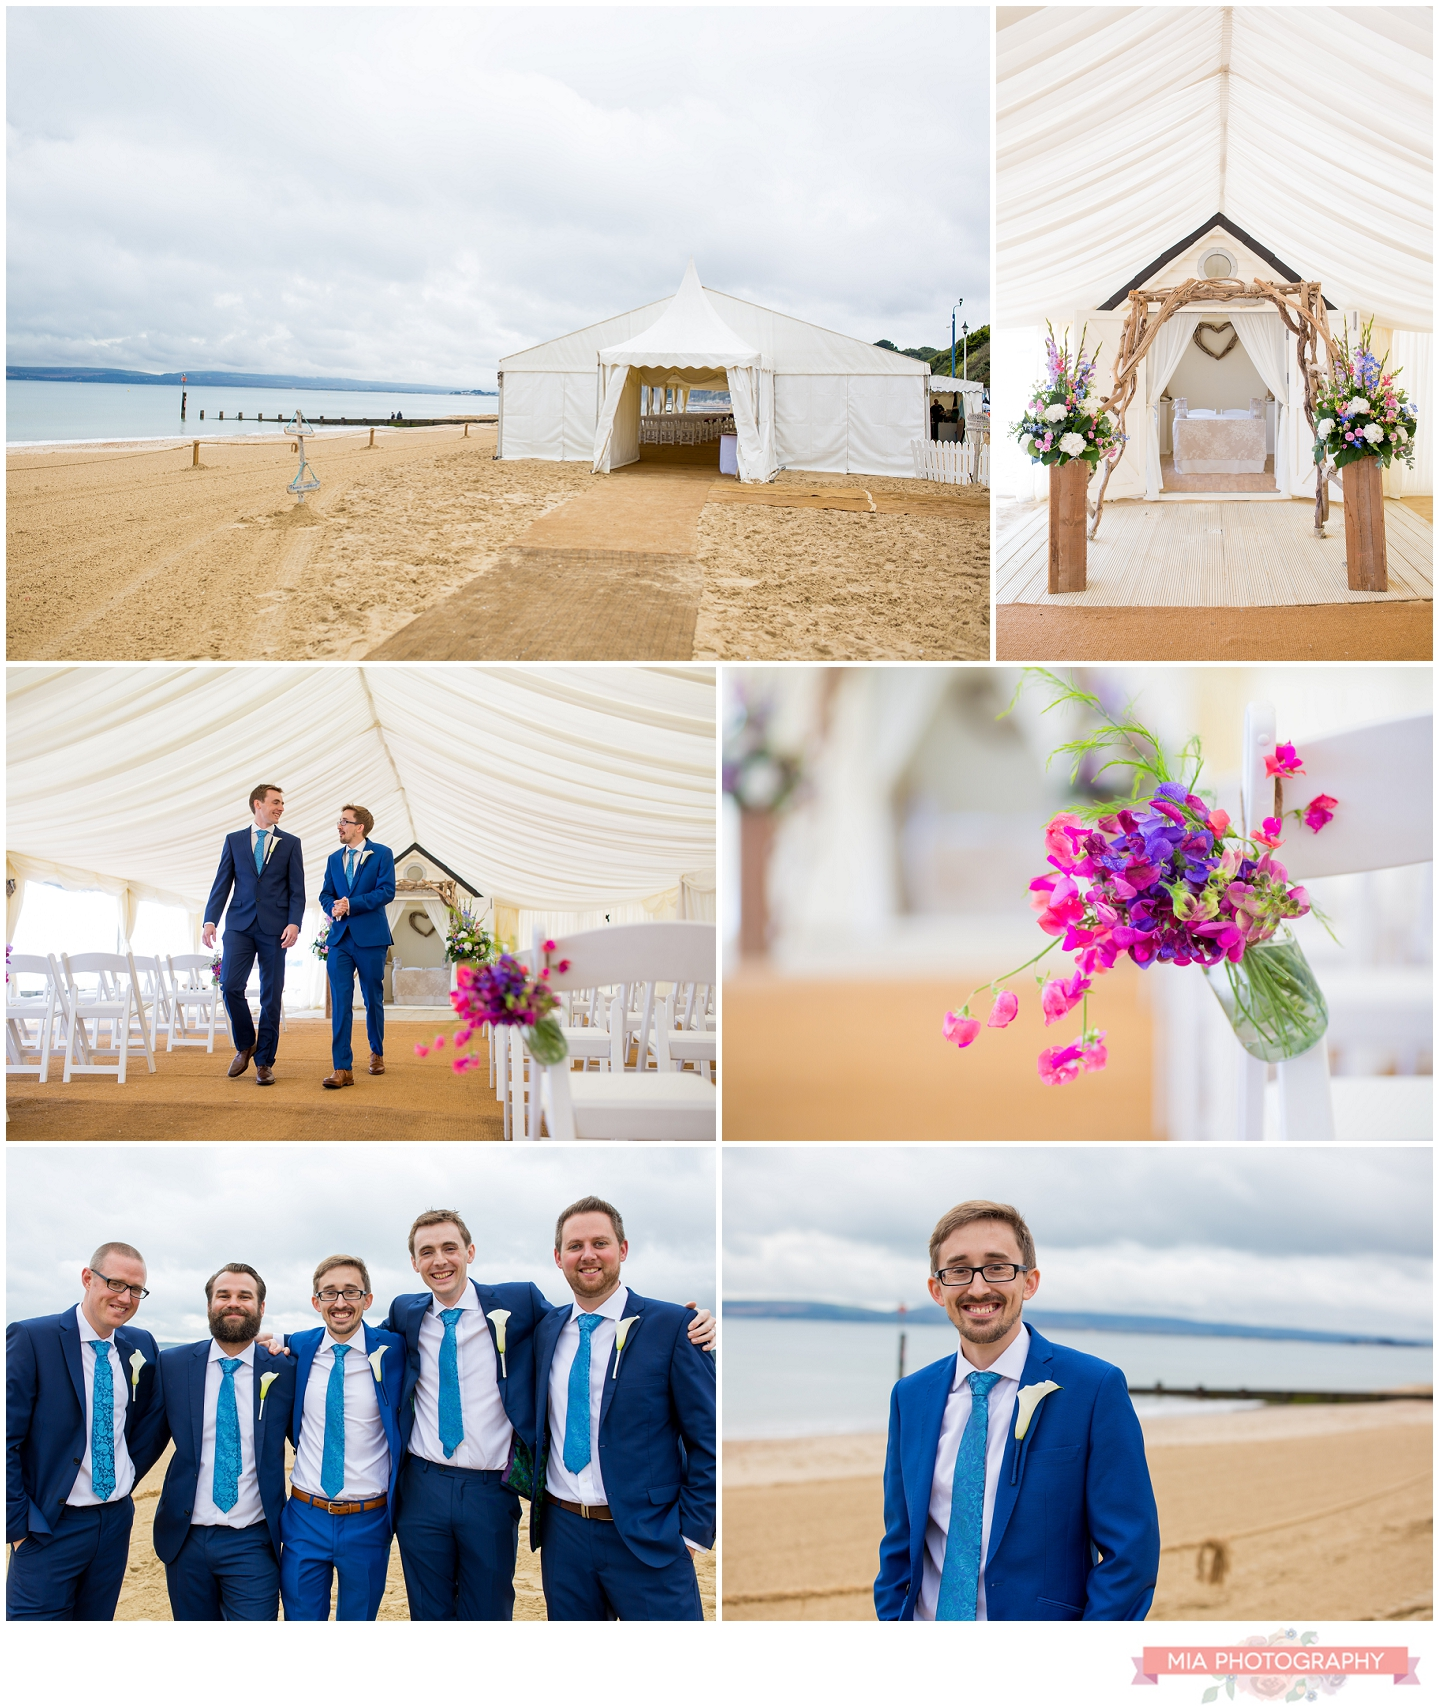 Beach-weddings-Bournemouth-Wedding-009